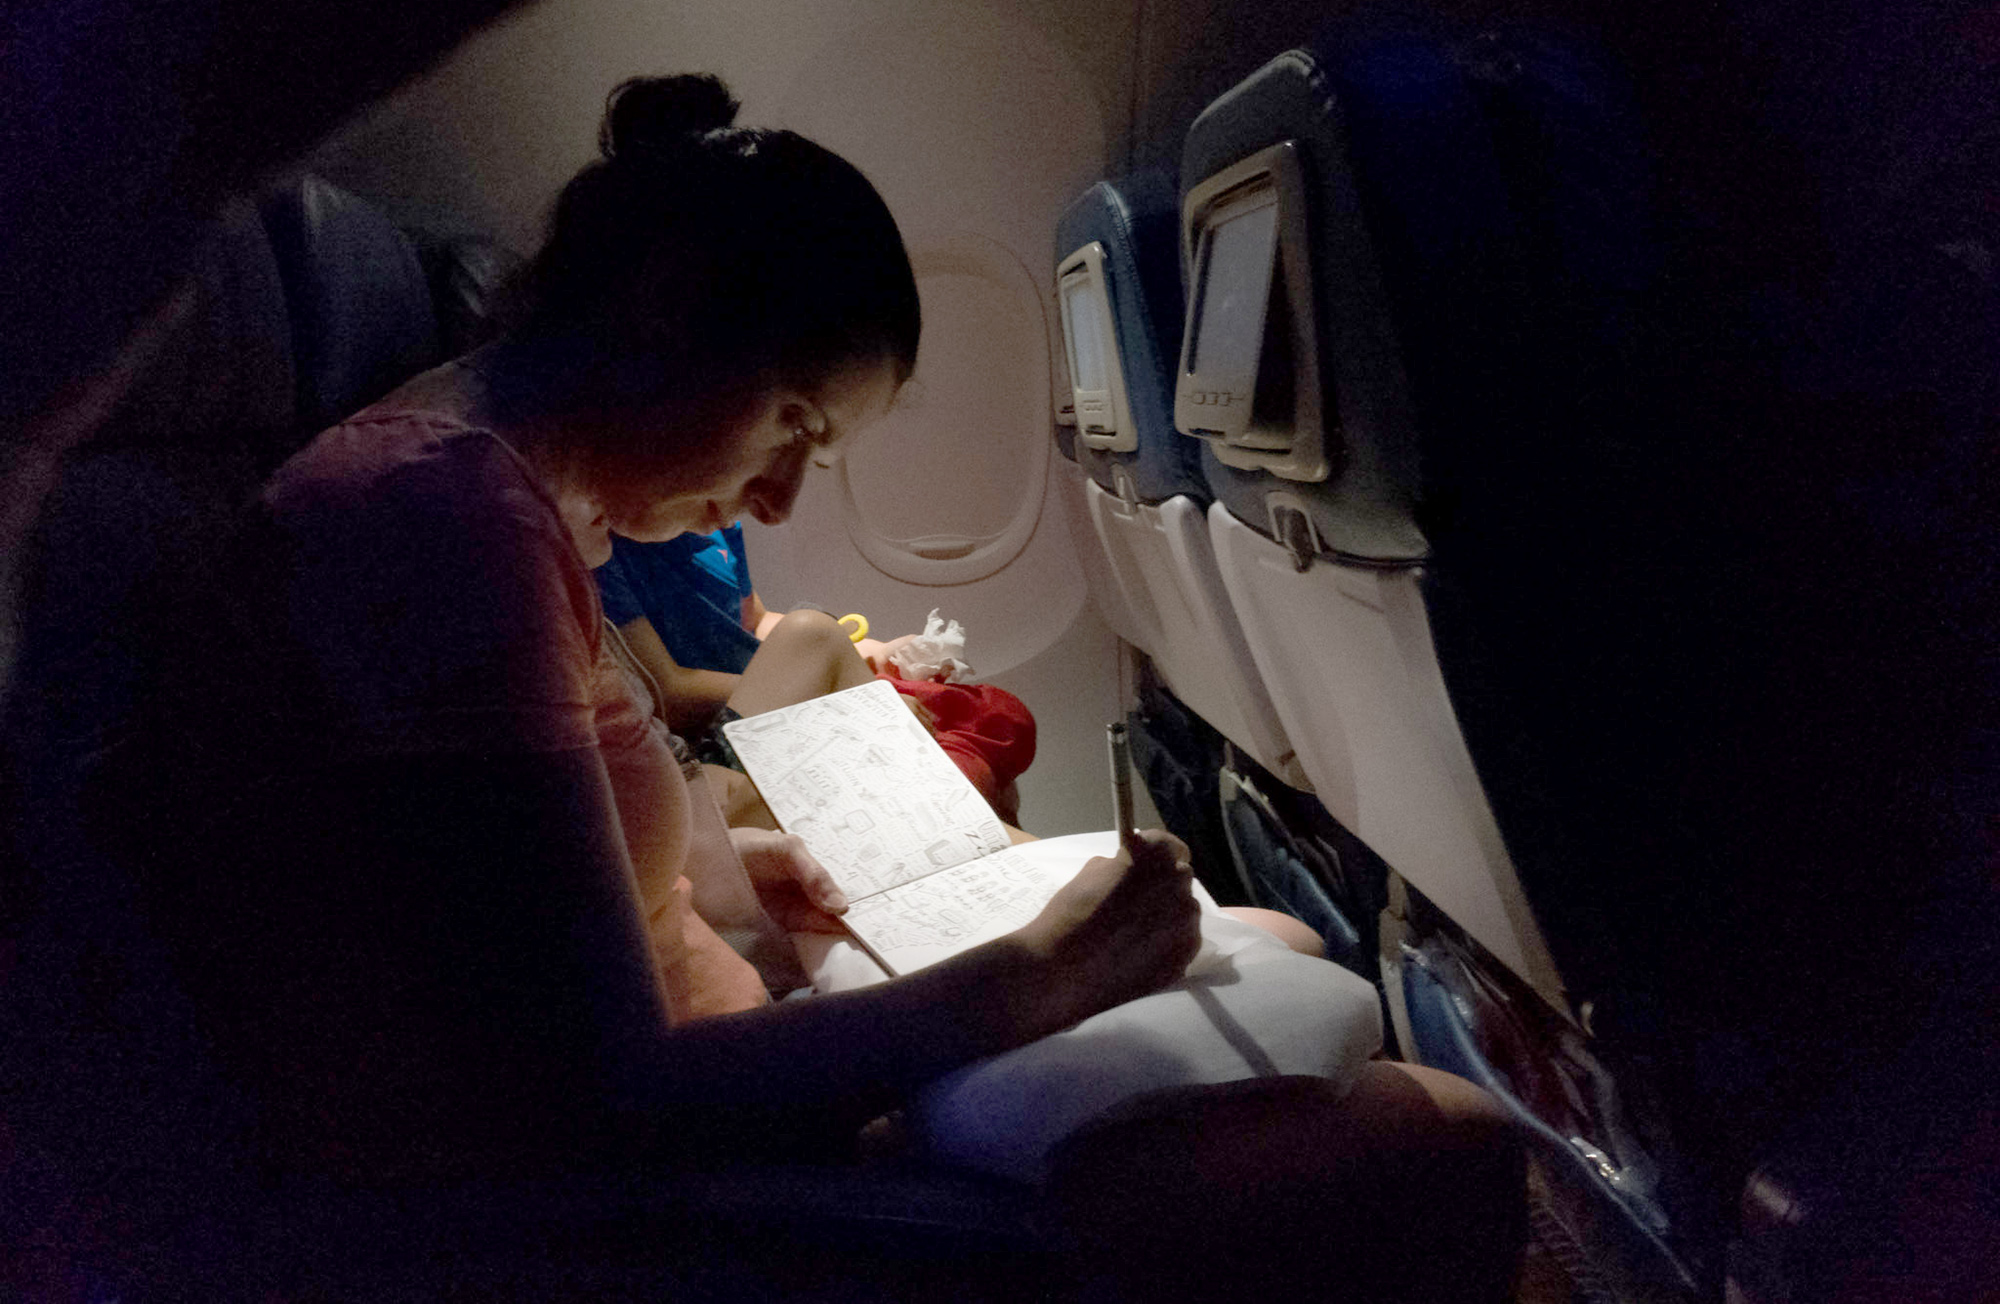 Finishing a drawing on an overnight flight. Thanks to the husband and family paparazzo, Matthew, for capturing it! xo